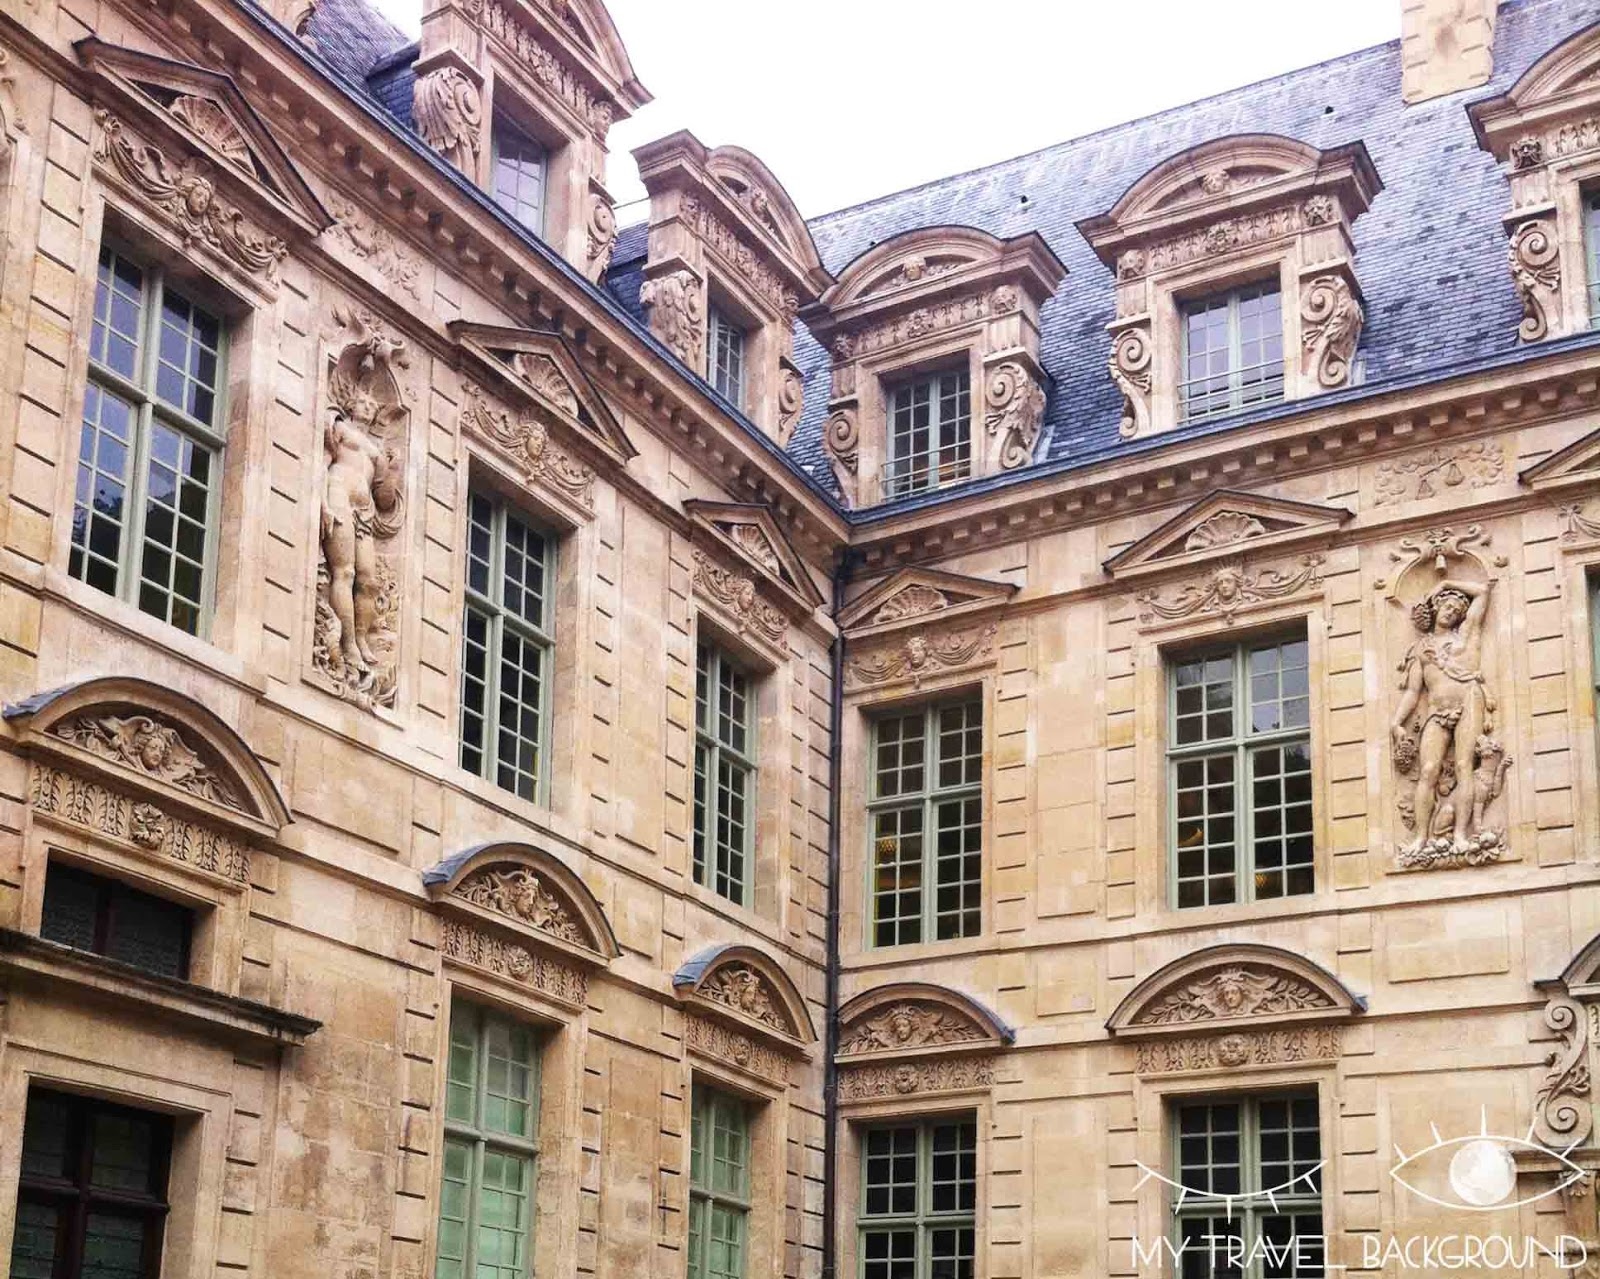 My Travel Background : #ParisPromenade, Le Marais - L'hôtel de Sully